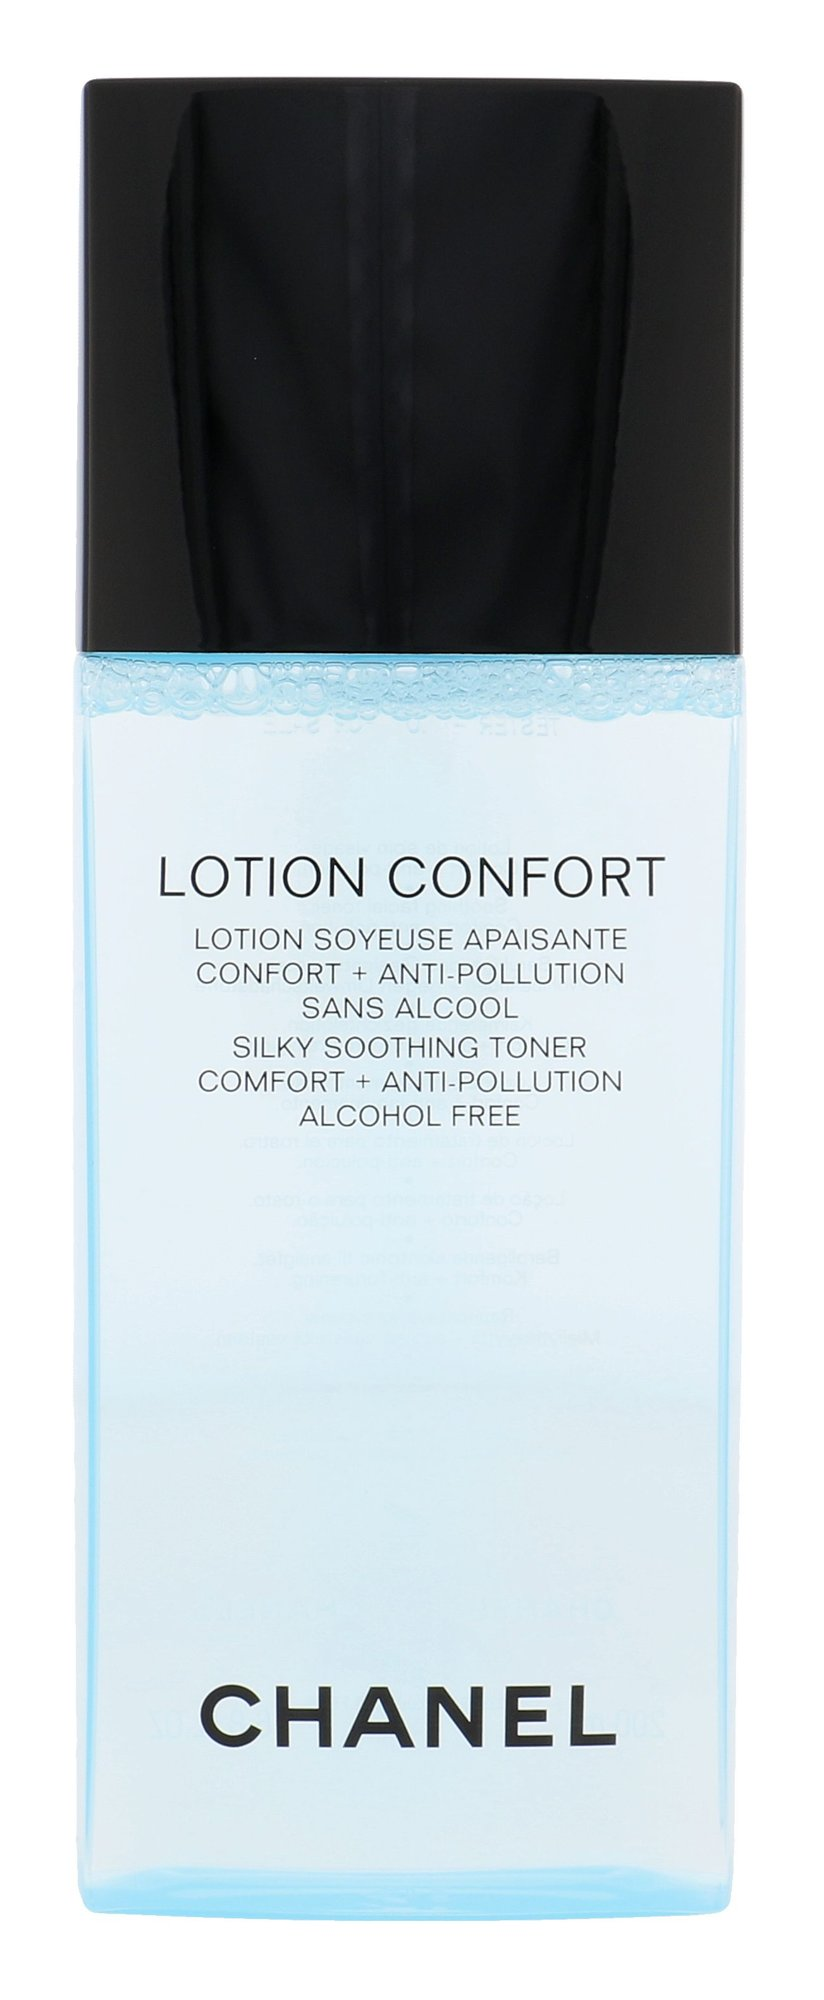 Chanel Lotion Confort Cosmetic 200ml